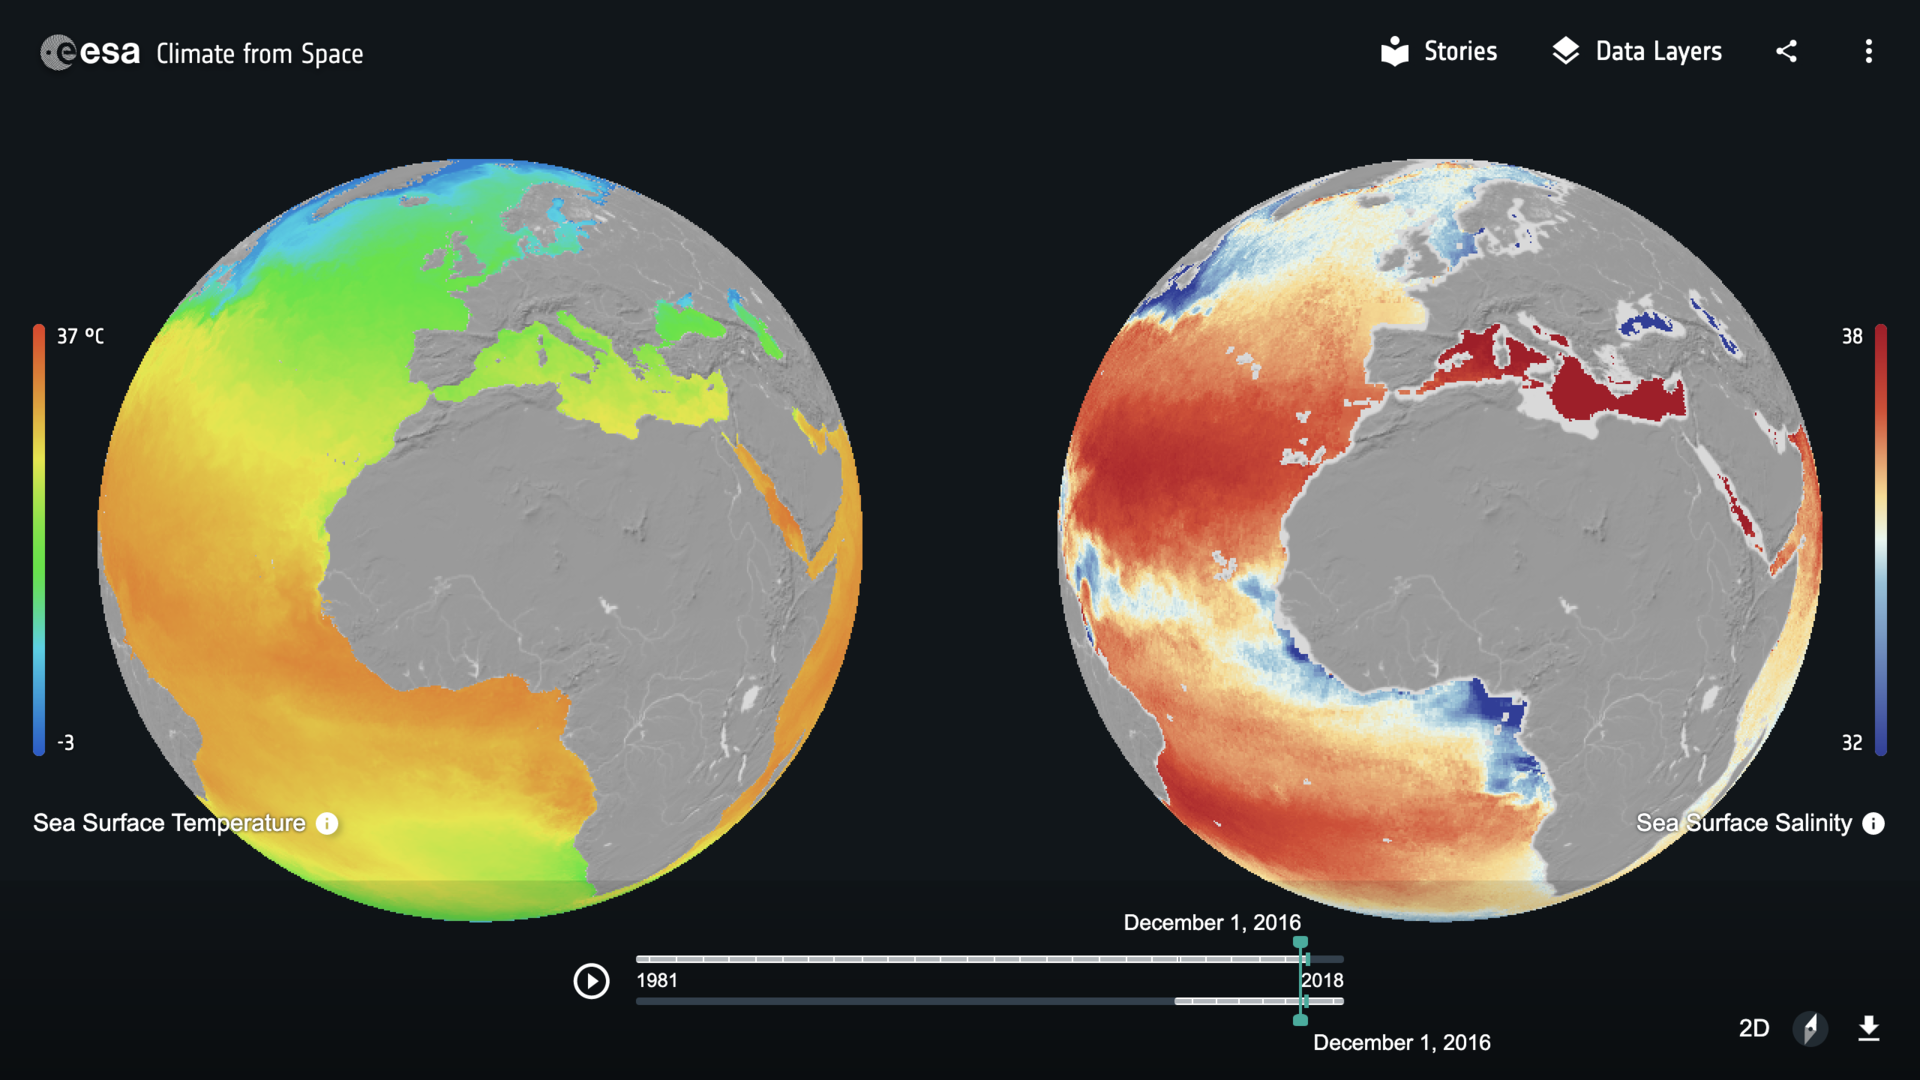 Climate from Space: Sea surface